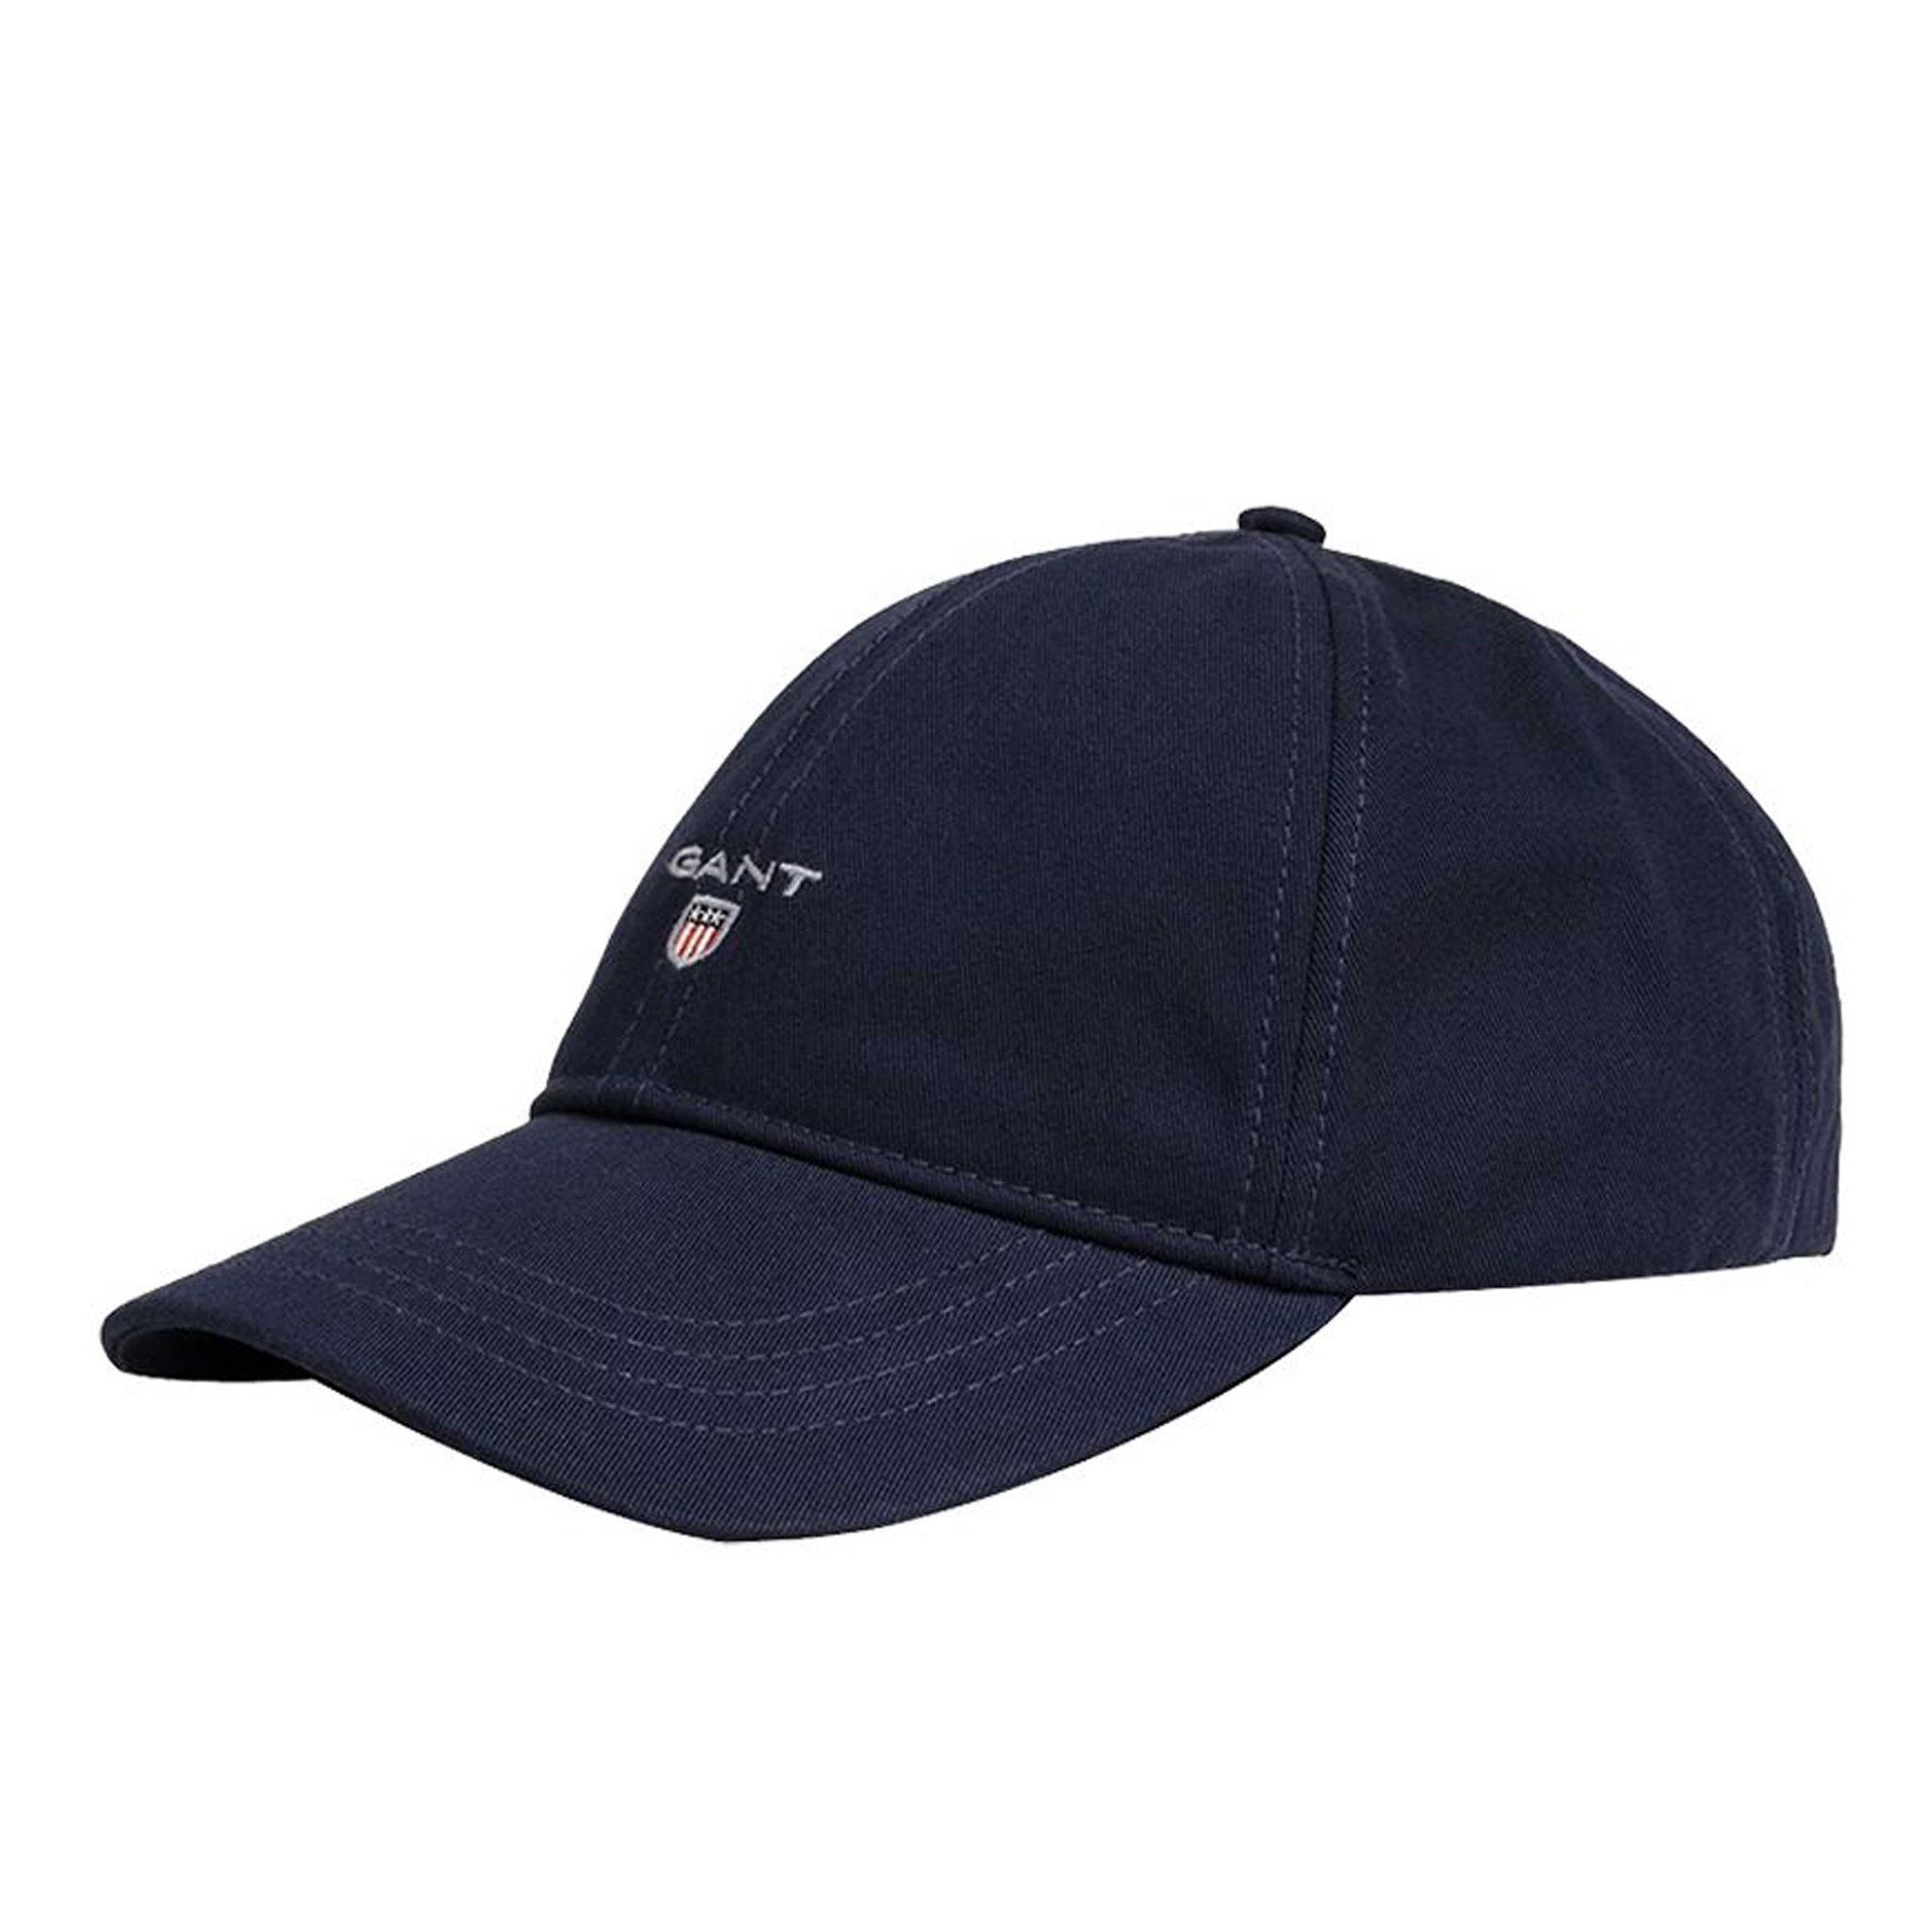 COTTON TWILL CAP GANT MAN